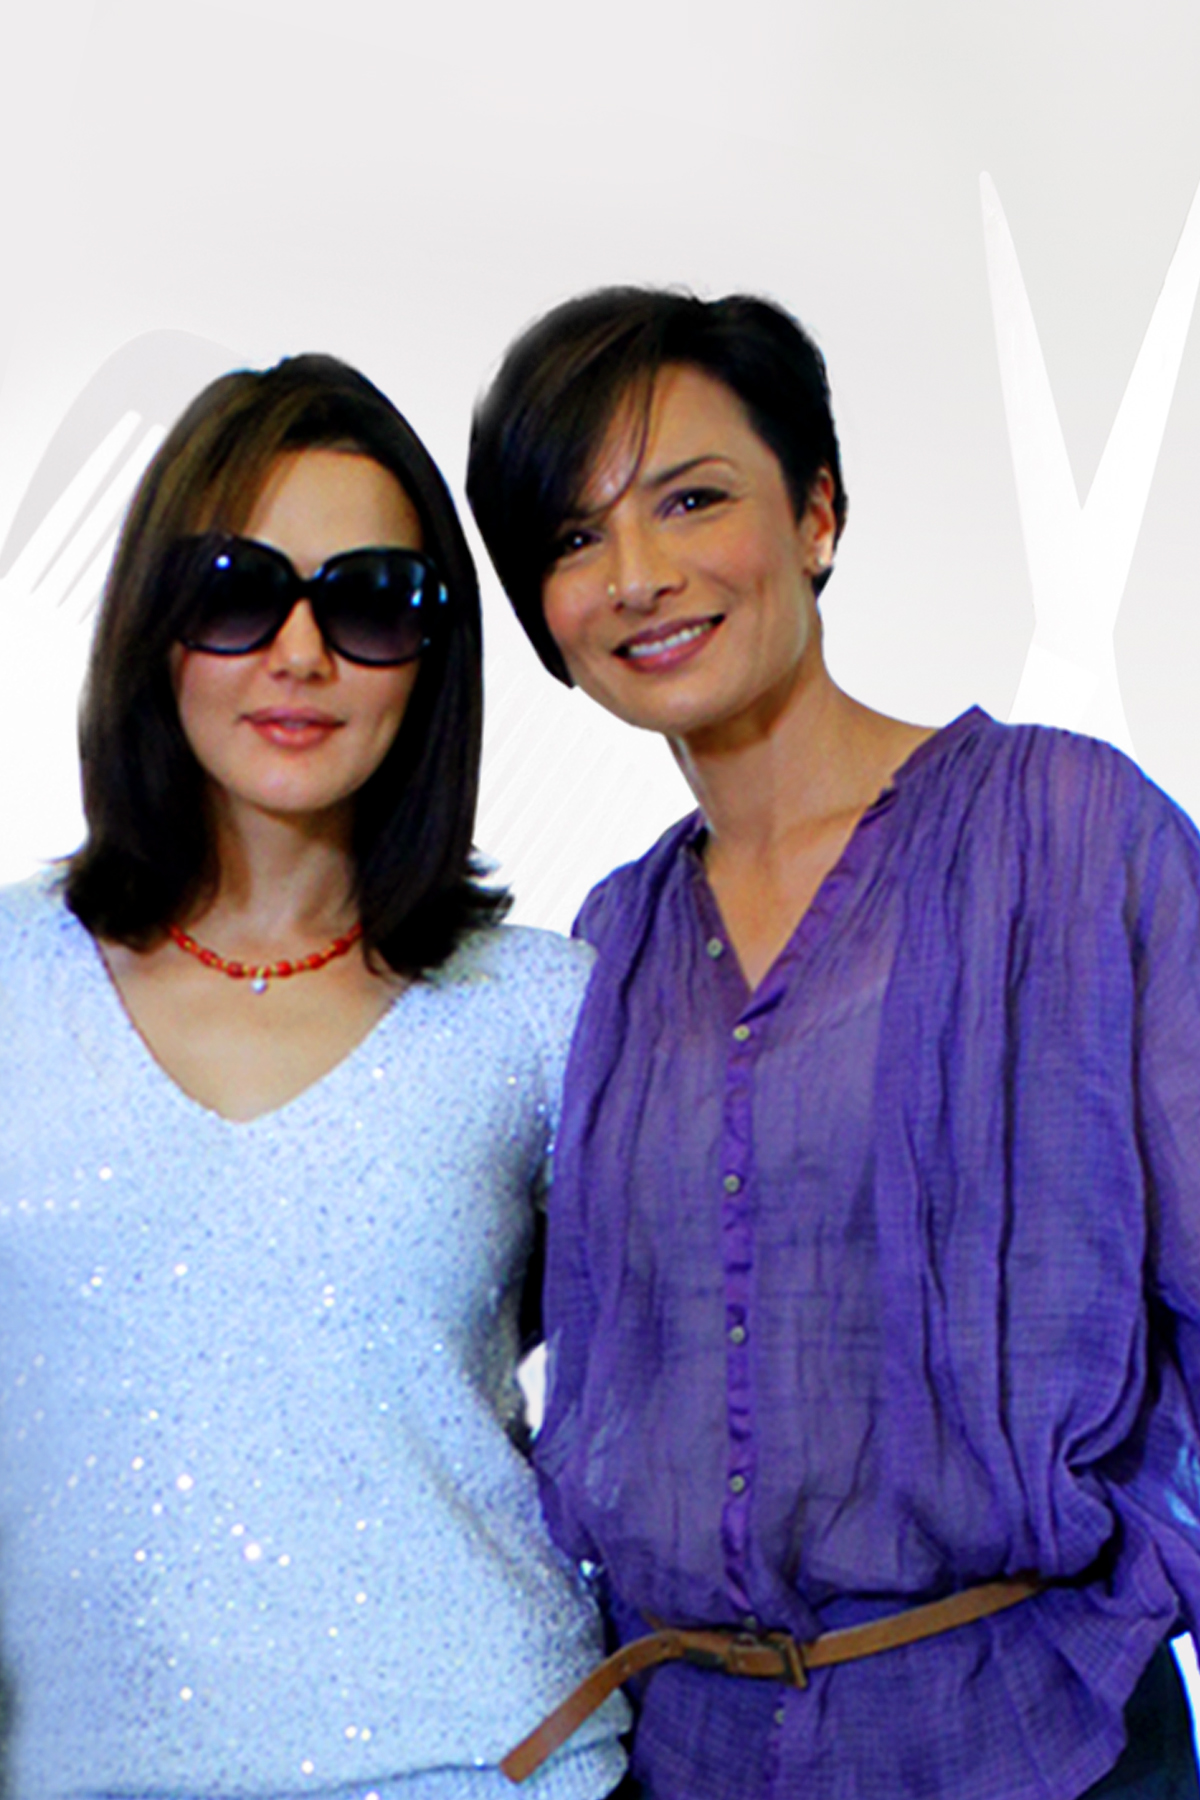 Real to reel: Adhuna Akhtar's hairstyling passion extended